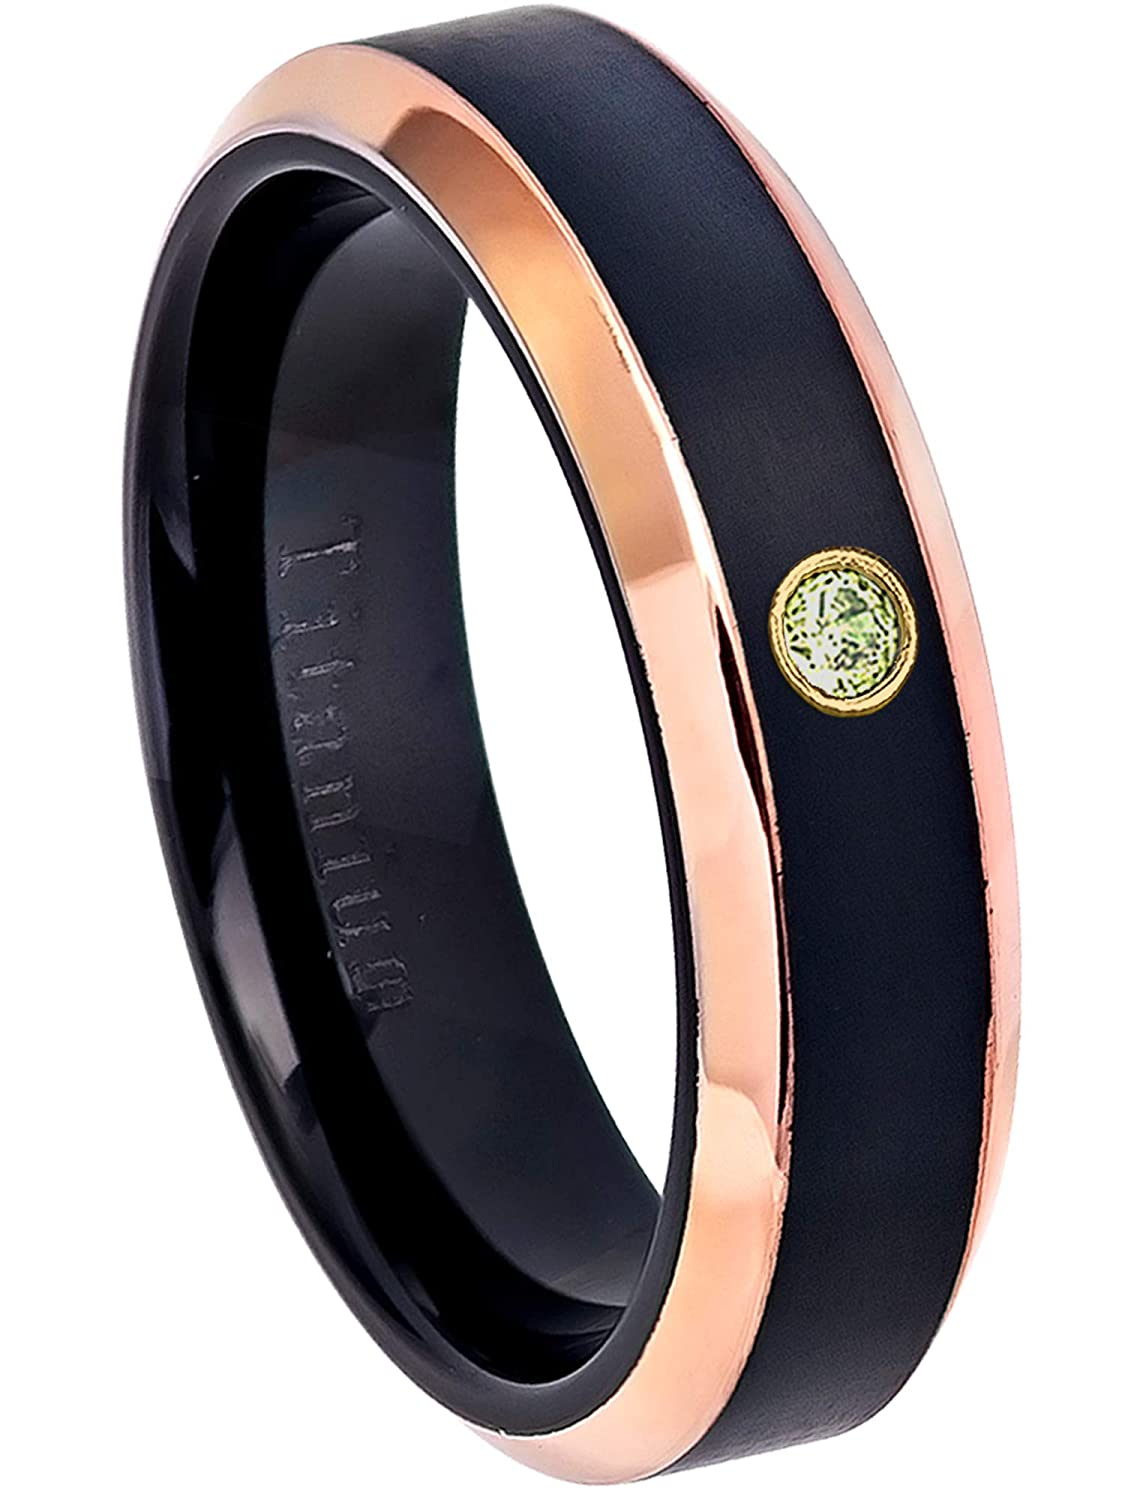 6MM Black Ion Plated /& Rose Gold Plated Beveled Edge Comfort Fit Titanium Wedding Band August Birthstone Ring 0.07ct Peridot Titanium Ring